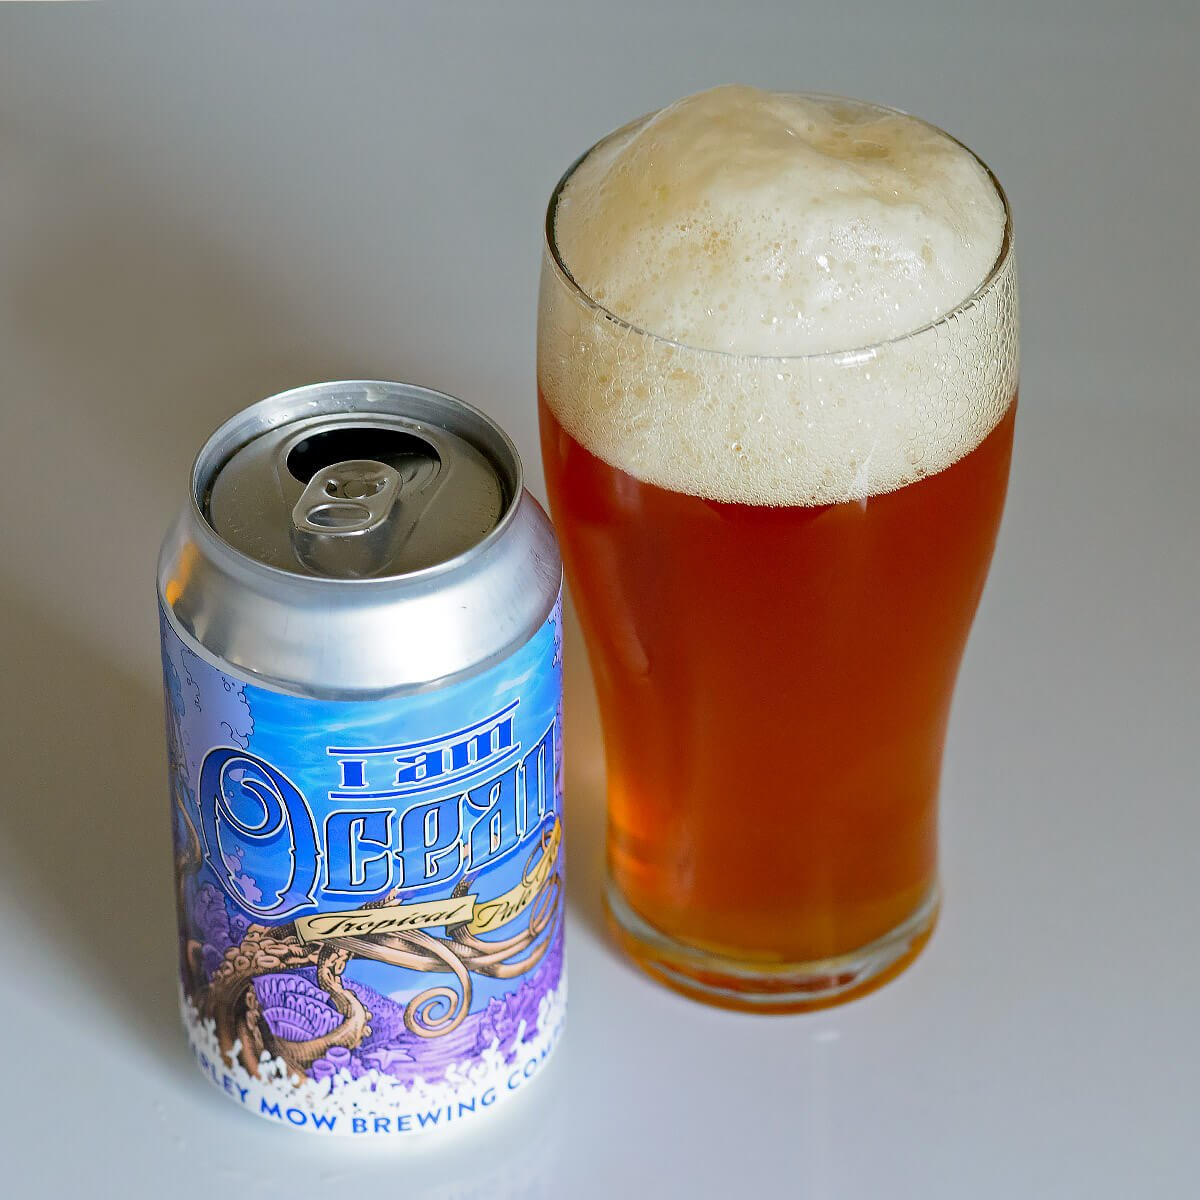 I Am Ocean, an American Pale brewed by Barley Mow Brewing Company.